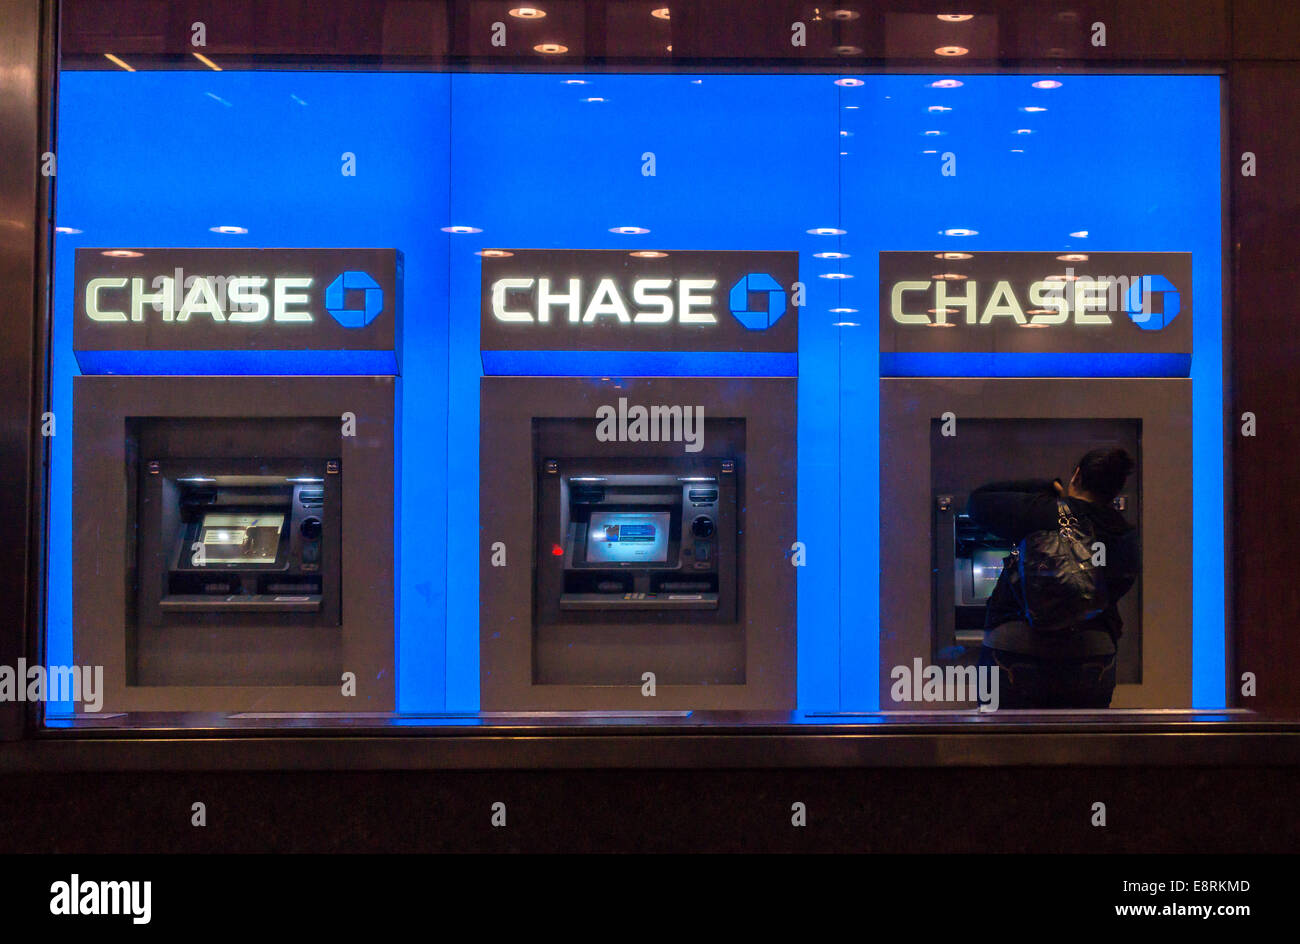 Customer uses the ATM machines at a JPMorgan Chase bank in New York on capital one bank, pnc bank, morgan chase bank, m&t bank, american express bank, jpm chase bank, td bank, crossland savings bank, call chase bank, goldman sachs bank, washington mutual bank, united kingdom retail bank, deutsche bank, nearest chase bank, wells fargo bank, suntrust bank, bmo harris bank, outdoor chase bank, bank of america bank, key bank,